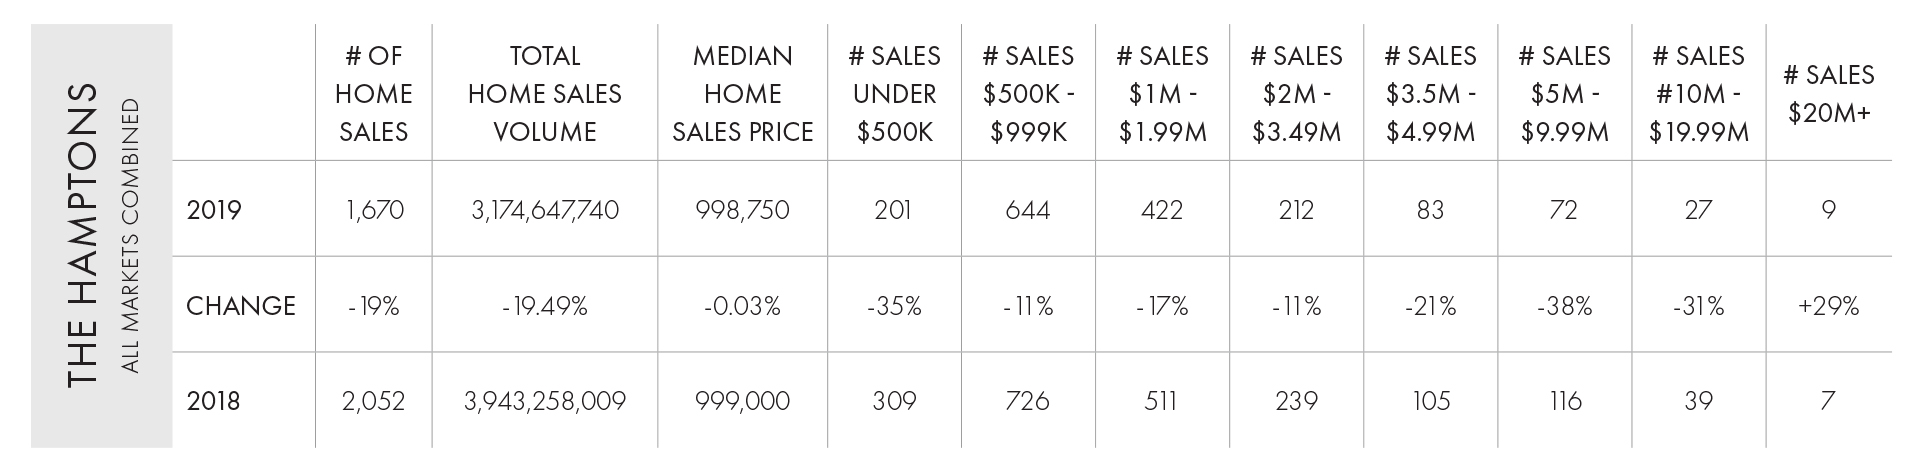 Hamptons Year End 2019 Home Sales Chart